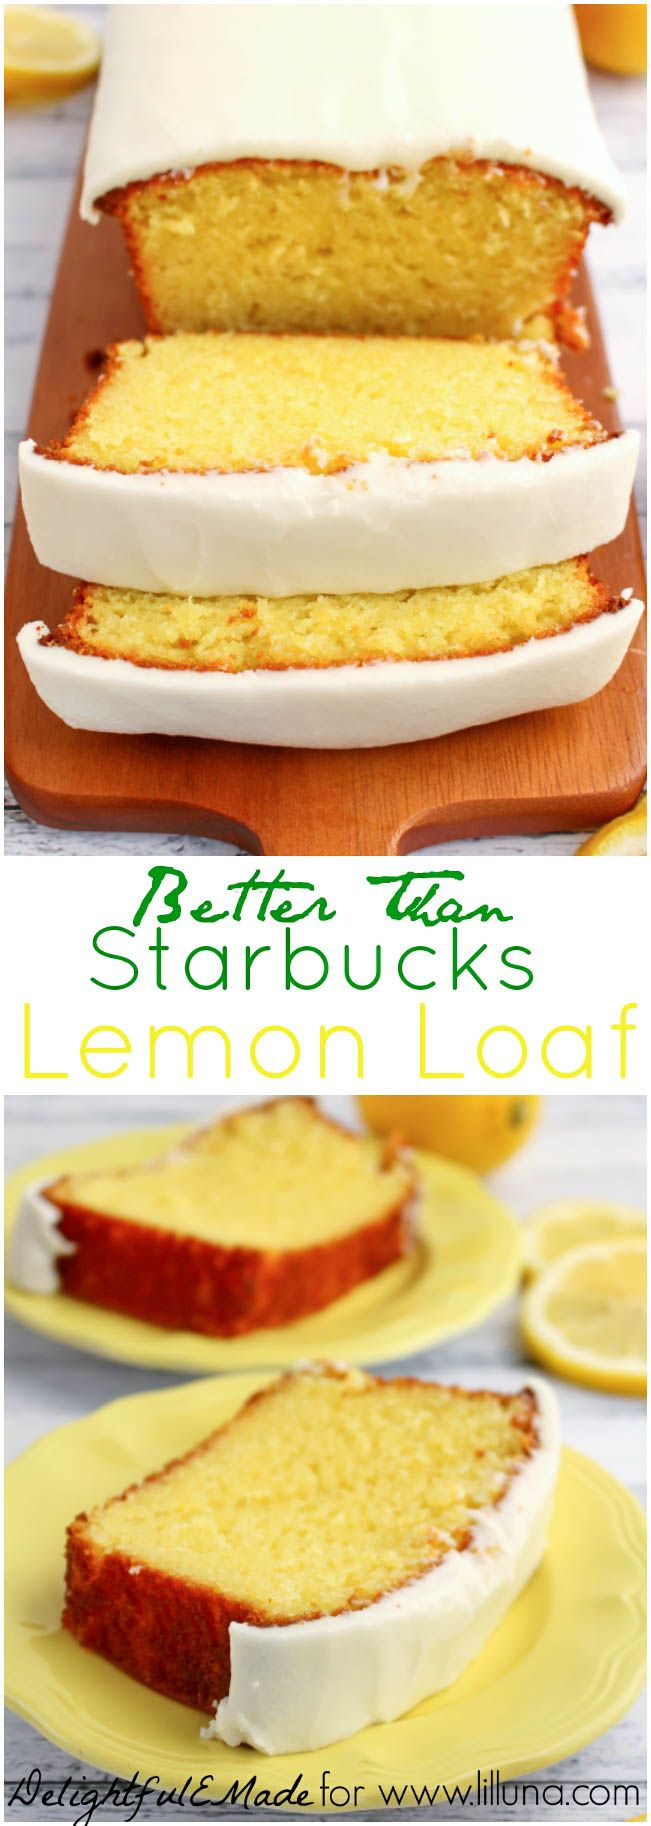 Better Than Starbucks Lemon Loaf